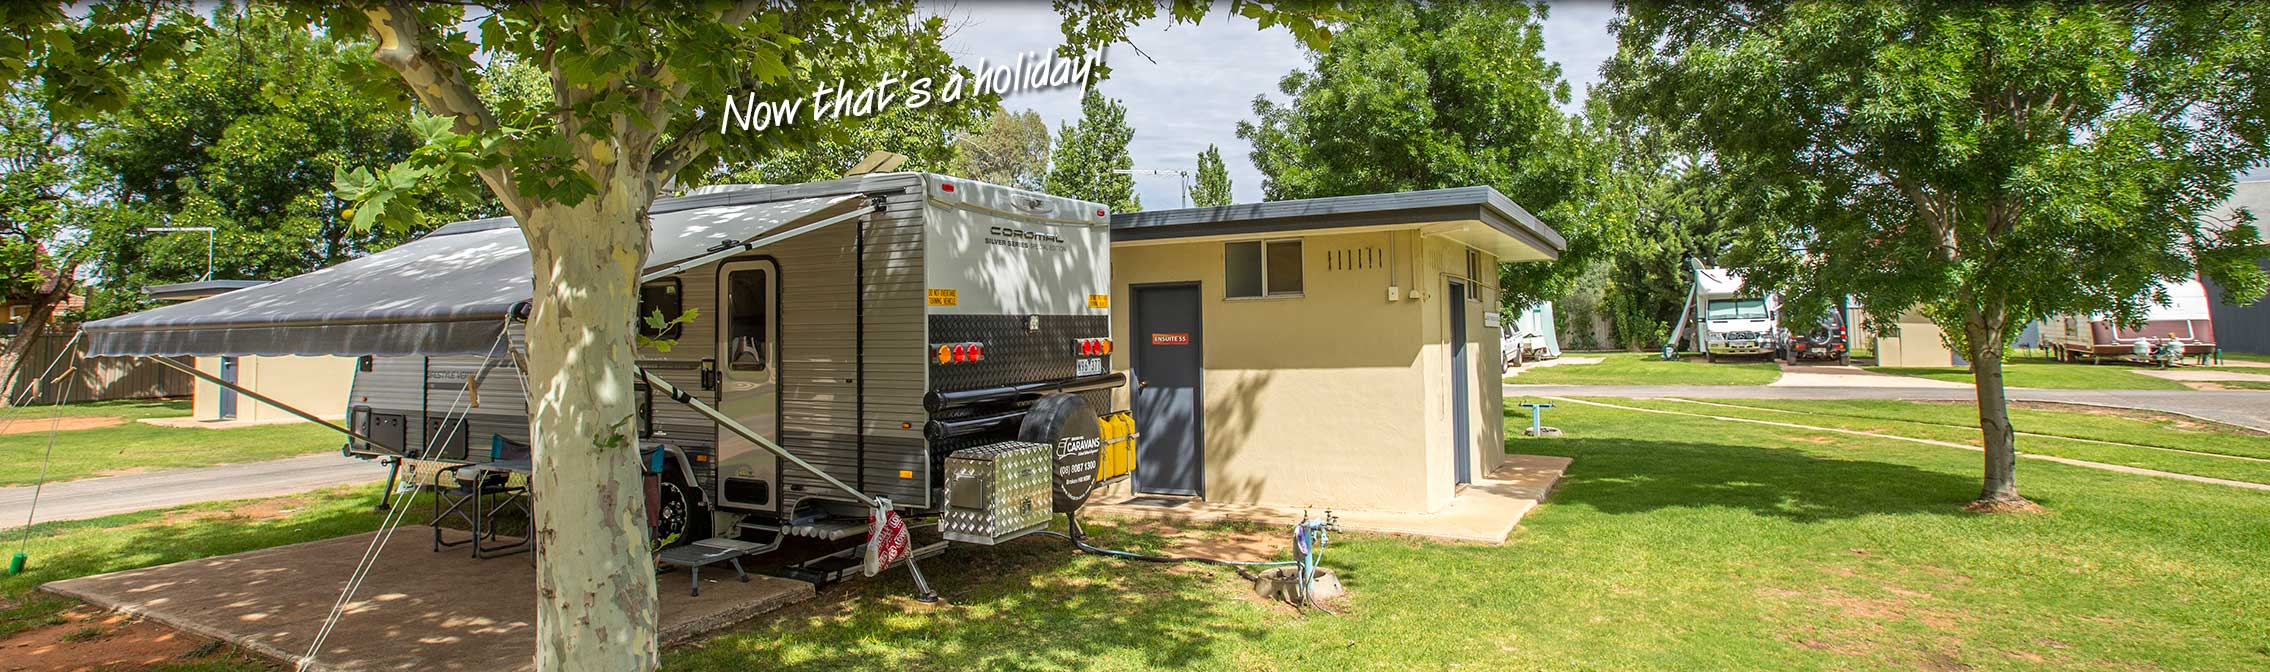 Caravan and Camping at All Seasons Holiday Park Mildura